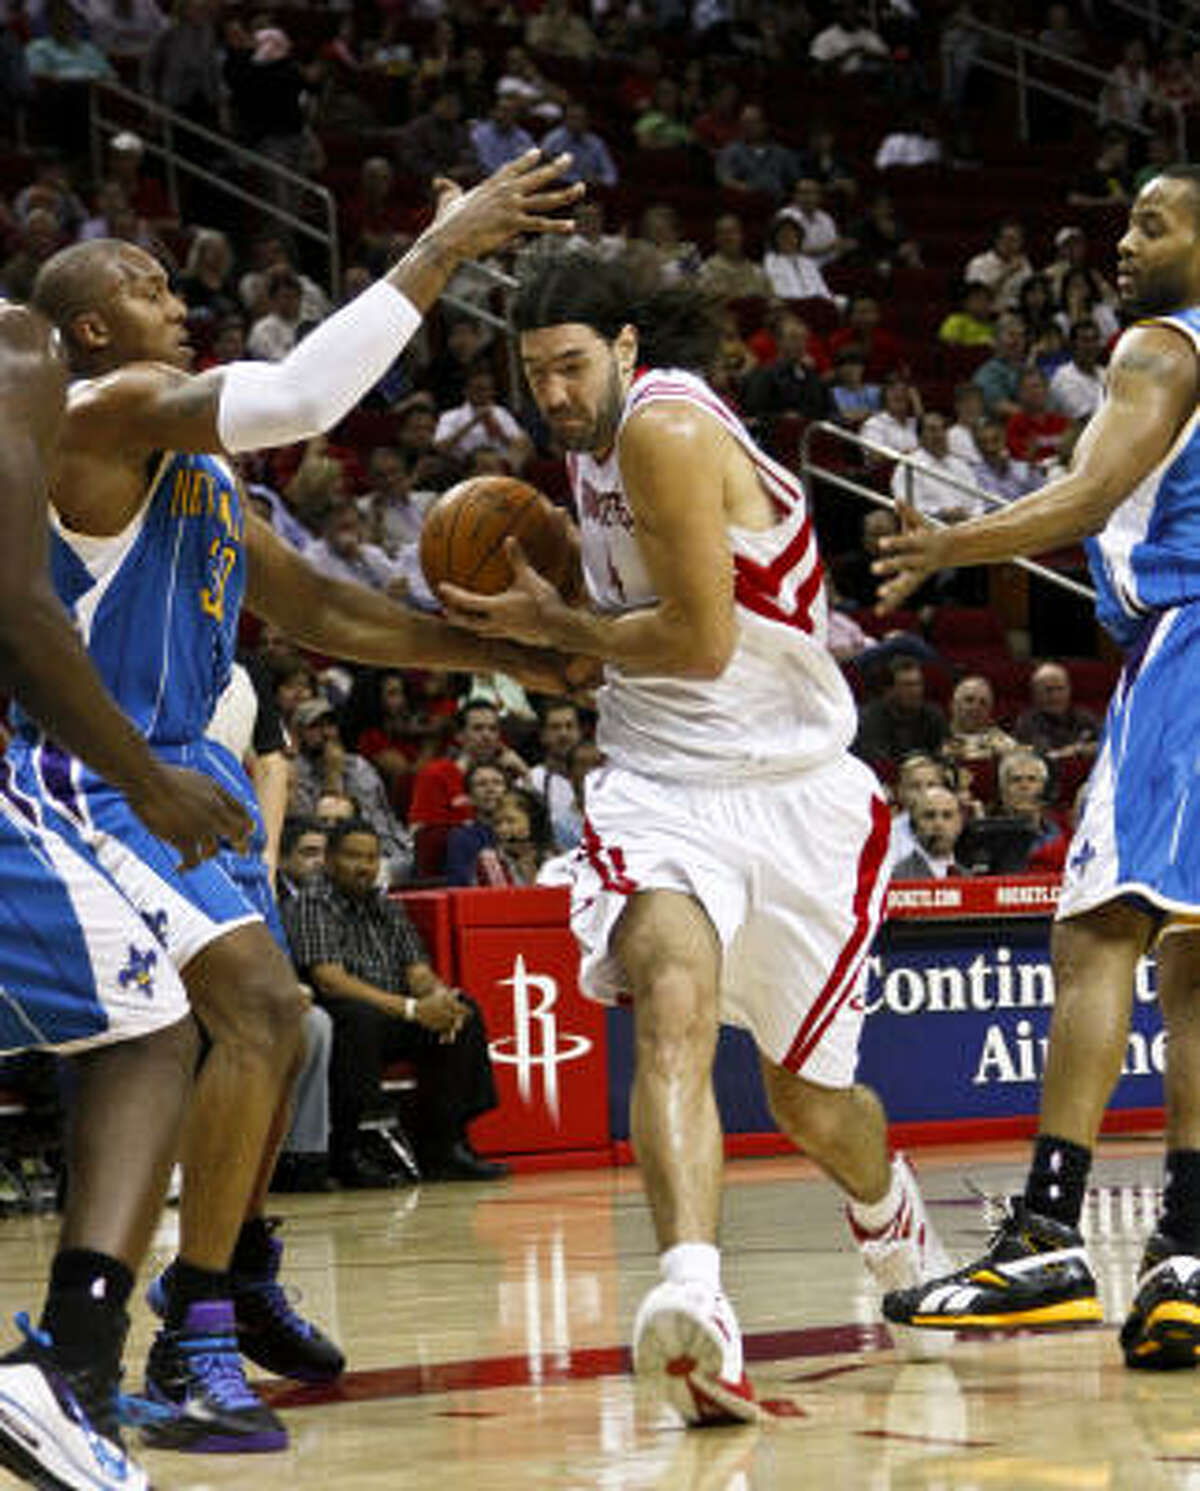 Rockets forward Luis Scola finished the season with career-highs in points (16.2) and minutes (32.5) per game.